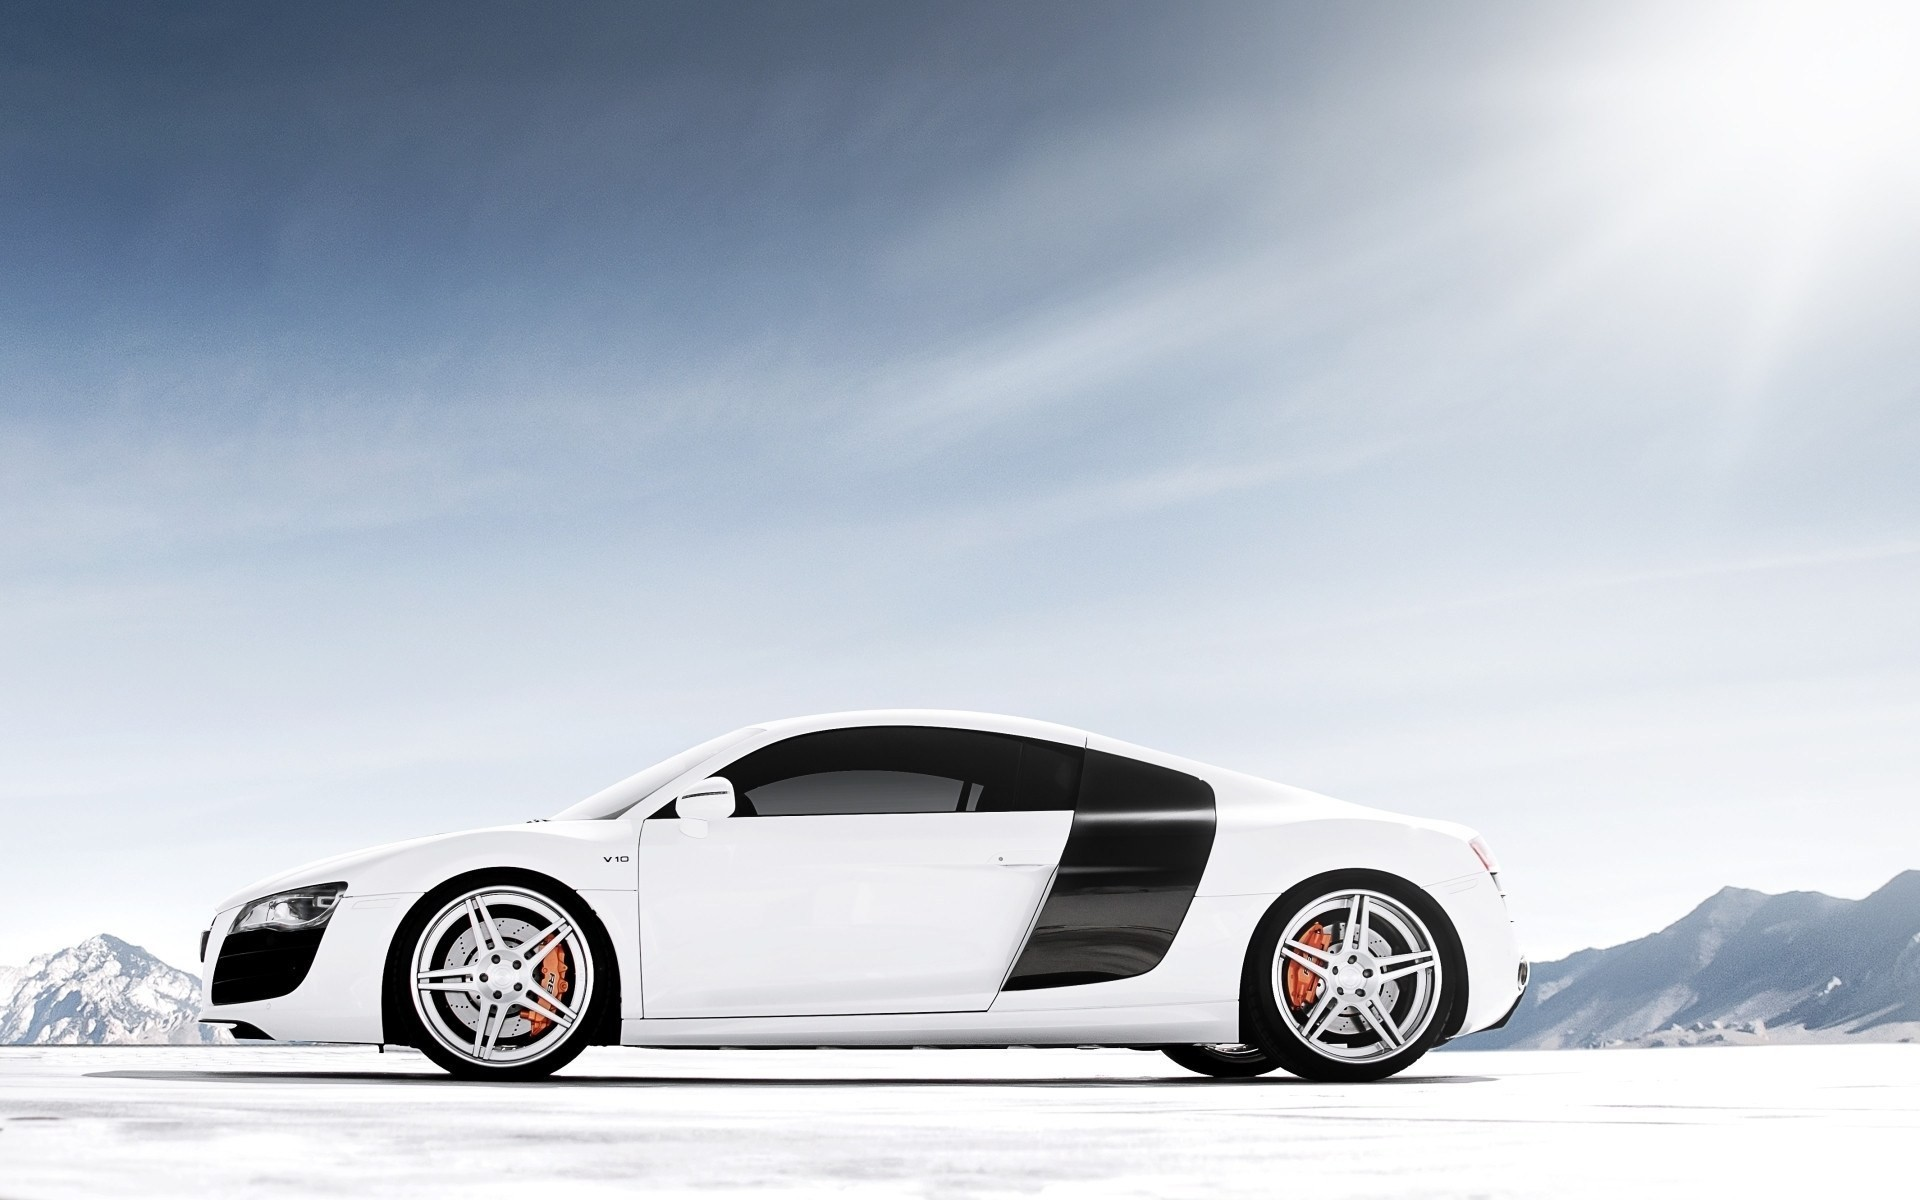 1920x1200 Audi R8 V10 2012 Auto Tapeten Hd Wallpaper 1024x768